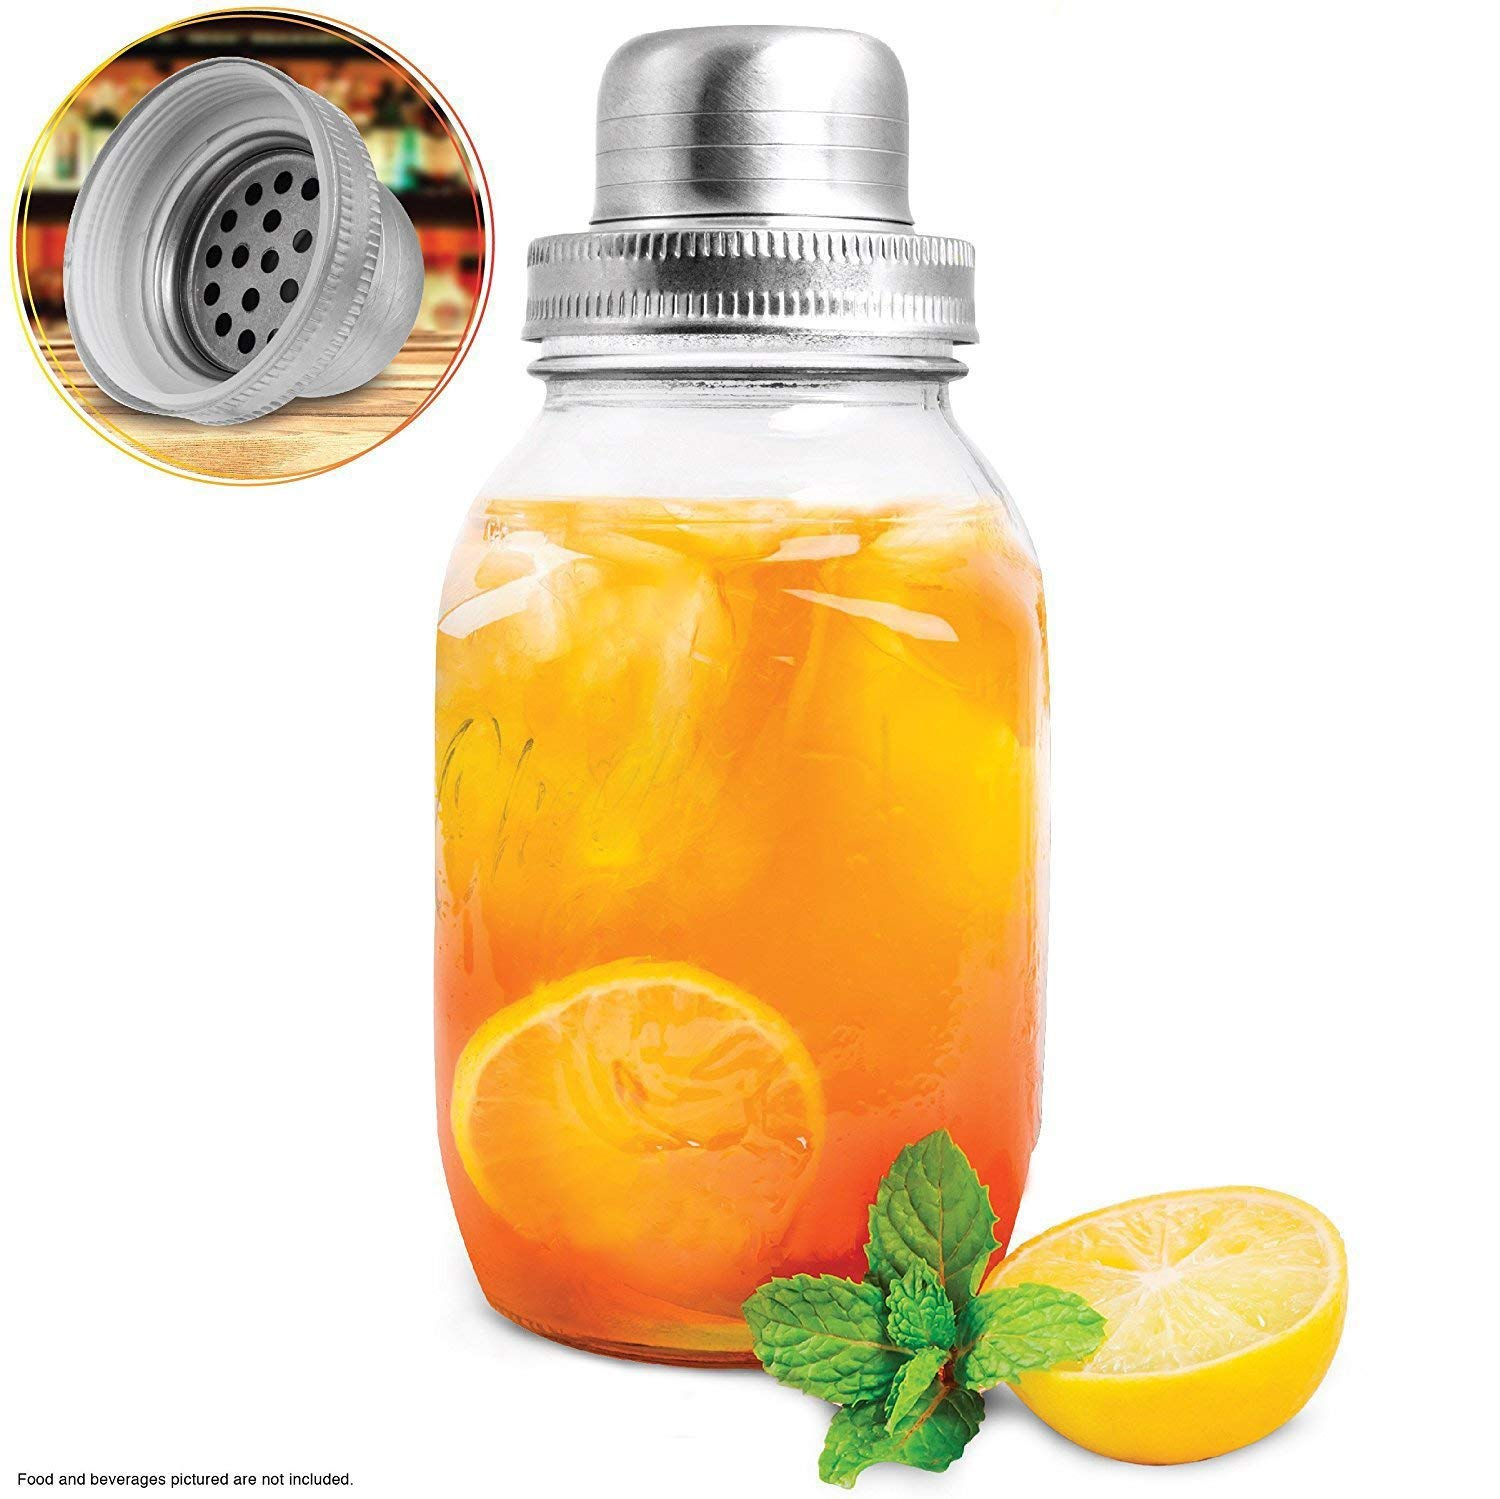 REFINERY AND CO. 32-oz. Glass Mason Jar Shaker, Create Cocktails & Chilled Beverages Like A Pro, Includes Stainless Steel Strainer, Pour Cap, and Ring Seal, Vintage Design With Built-In Measure Marks